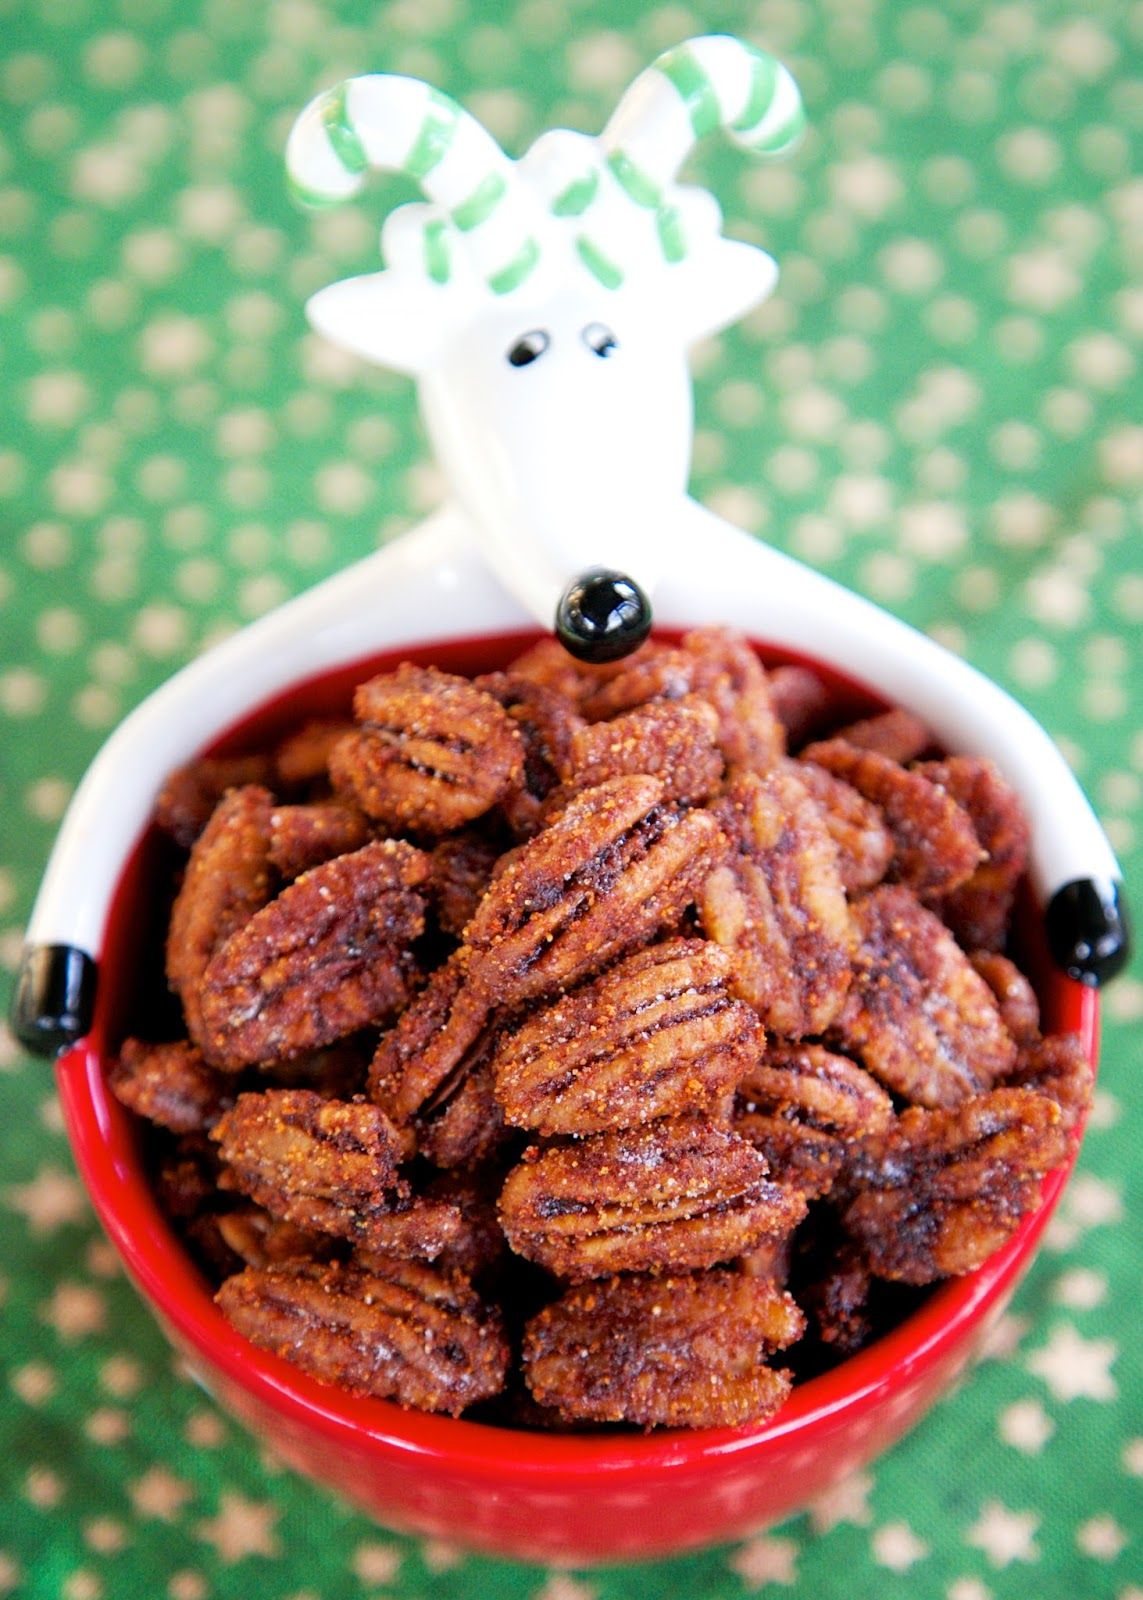 Sweet & Spicy Pecans - seriously delicious!!! Made these for a holiday party and they were gone in a flash! Everyone asked for the recipe! Pecans, water, sugar, chili powder, cayenne pepper. I always double or triple the recipe and there are never any leftovers! Great for holiday gifts!